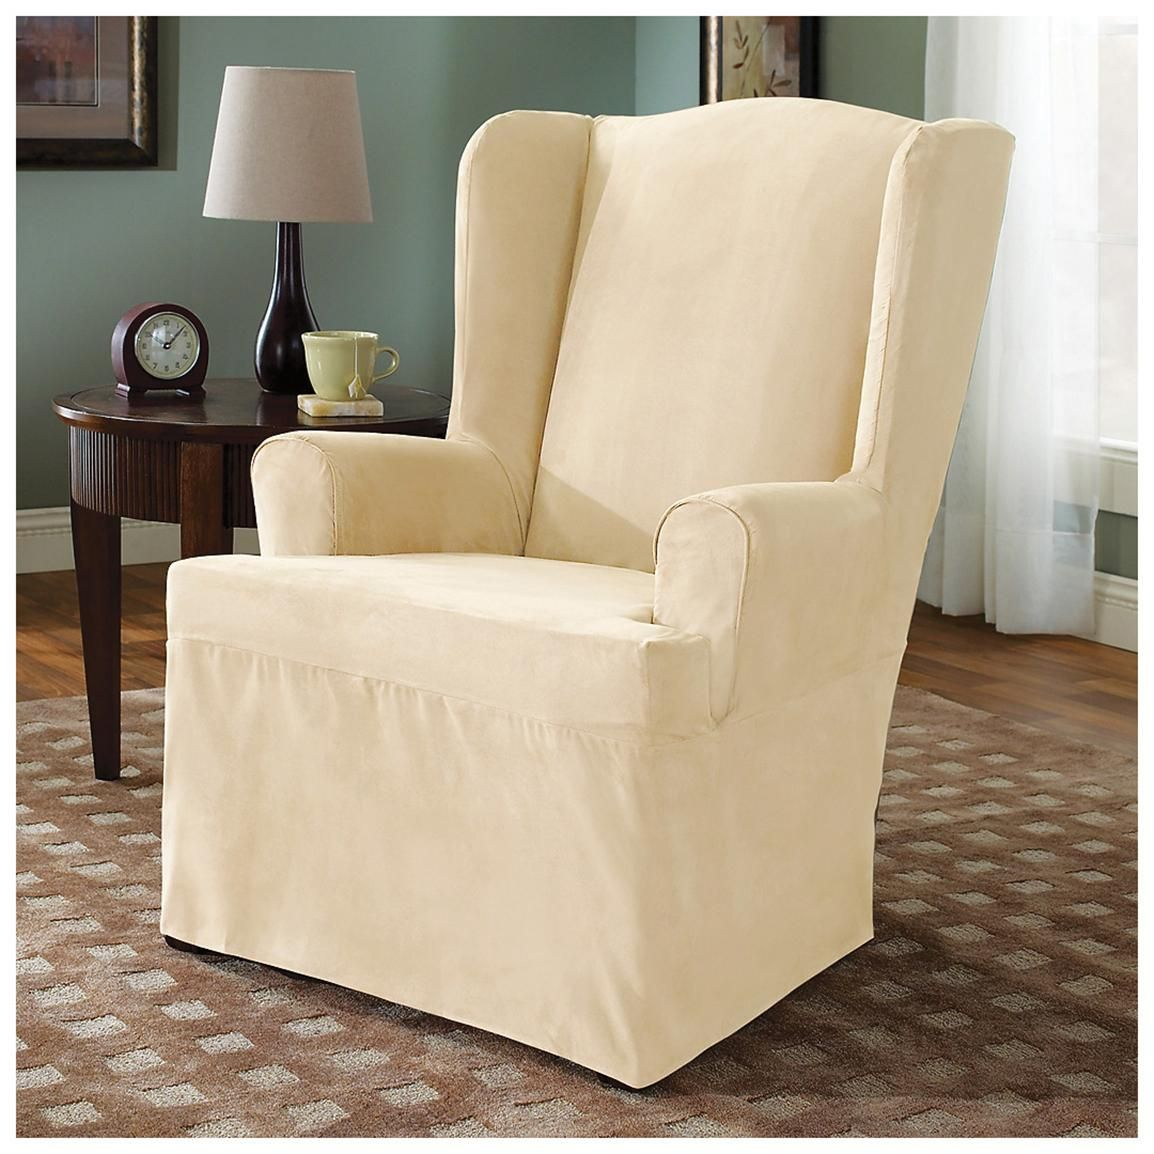 Microsuede Wing Chair Furniture Cover, Cream Slipcovers